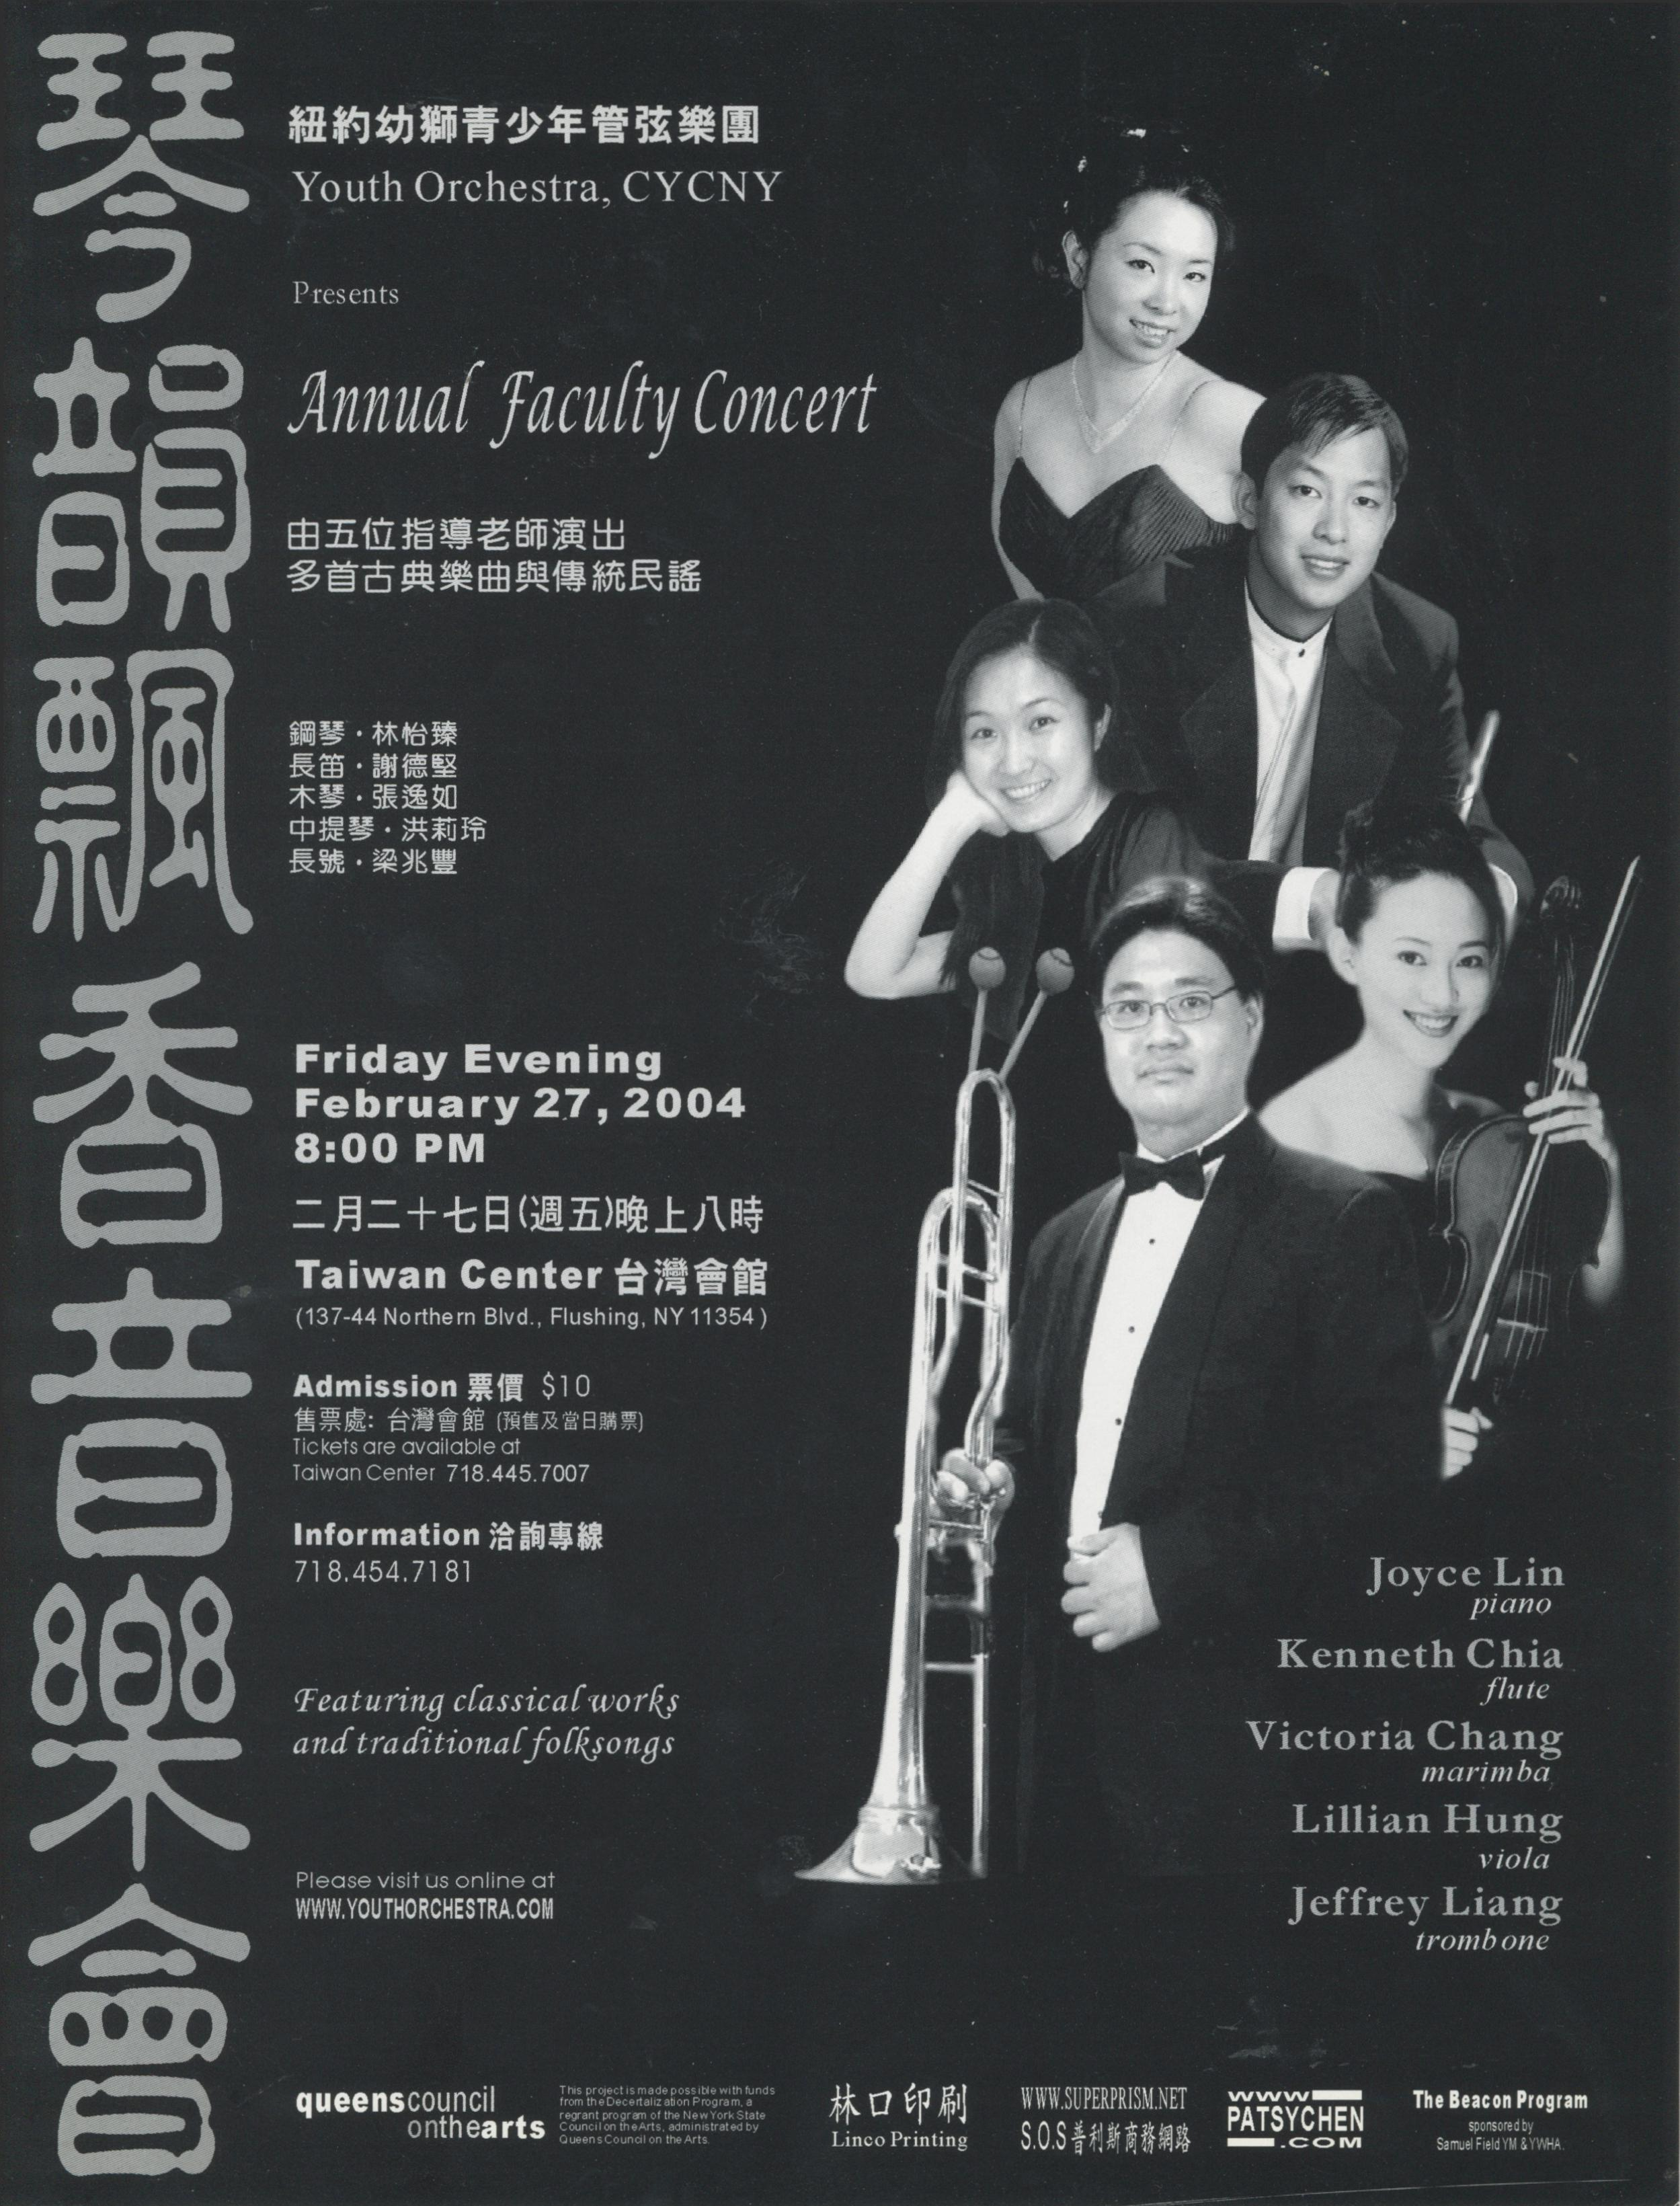 9. Annual Faculty Concert (琴韻飄香音樂會) by Youth Orchestra, CYCNY (紐約幼獅青少年管弦樂團), Flushing, NY on 11/29/2002, 02/27/2004